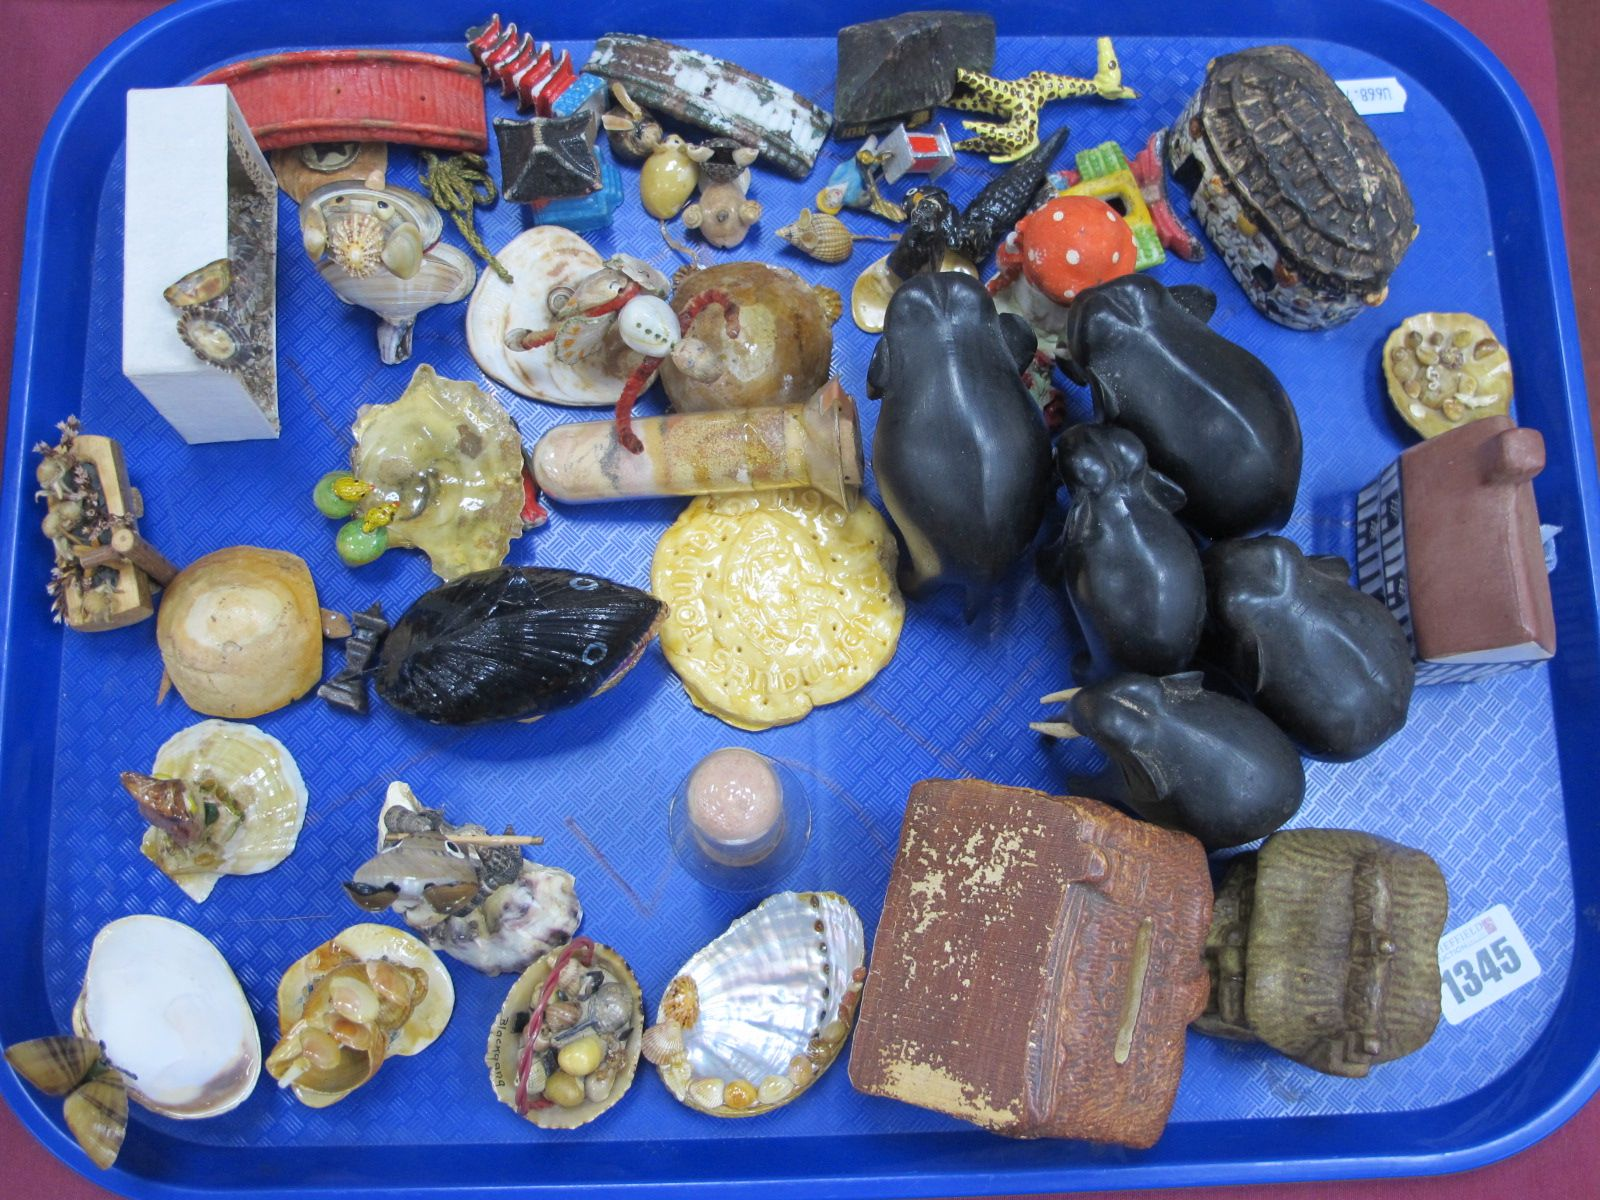 Shell Art Figures, of an owl, turtle, etc, ebony elephants, pottery houses, one of which is a money